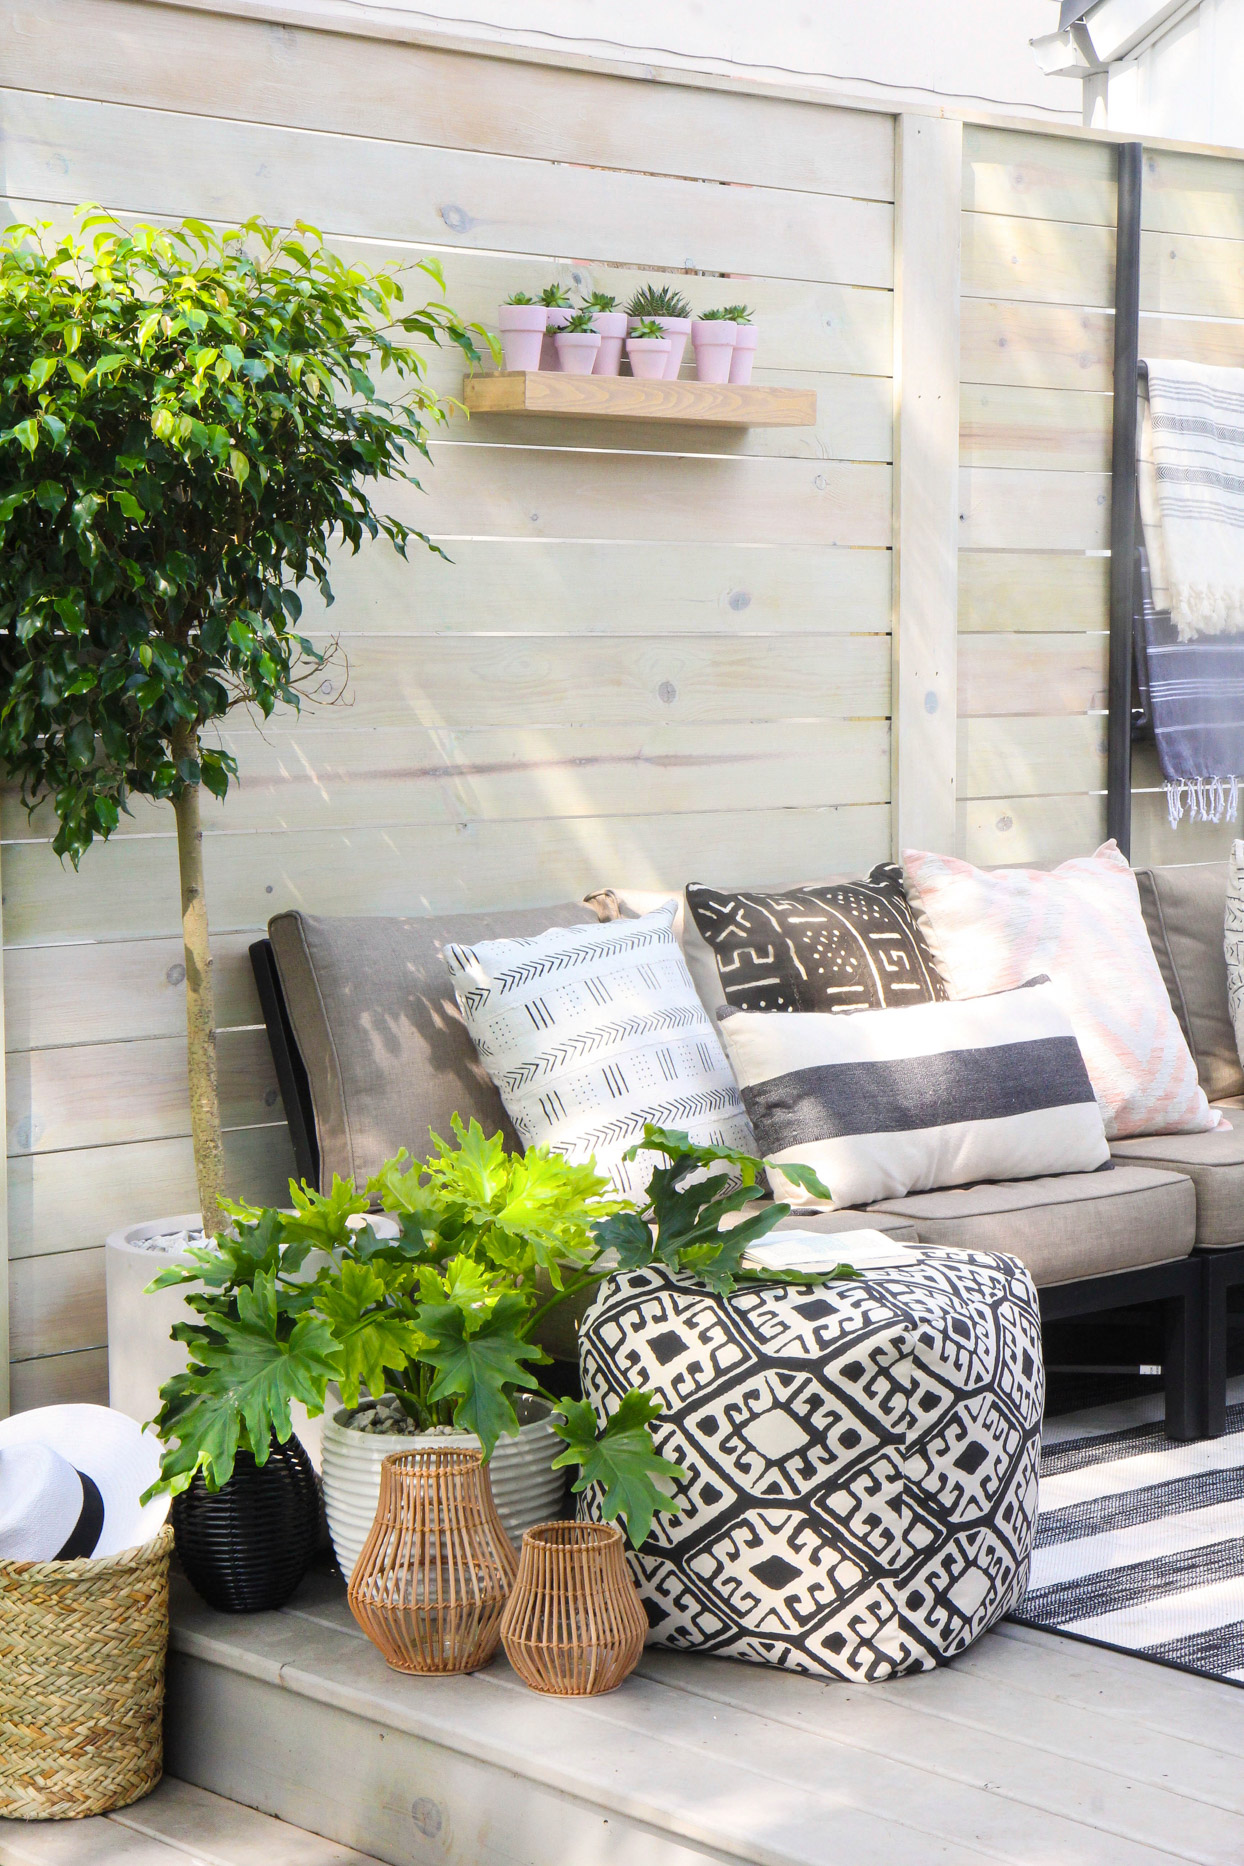 backyard seating area with shelf for plants